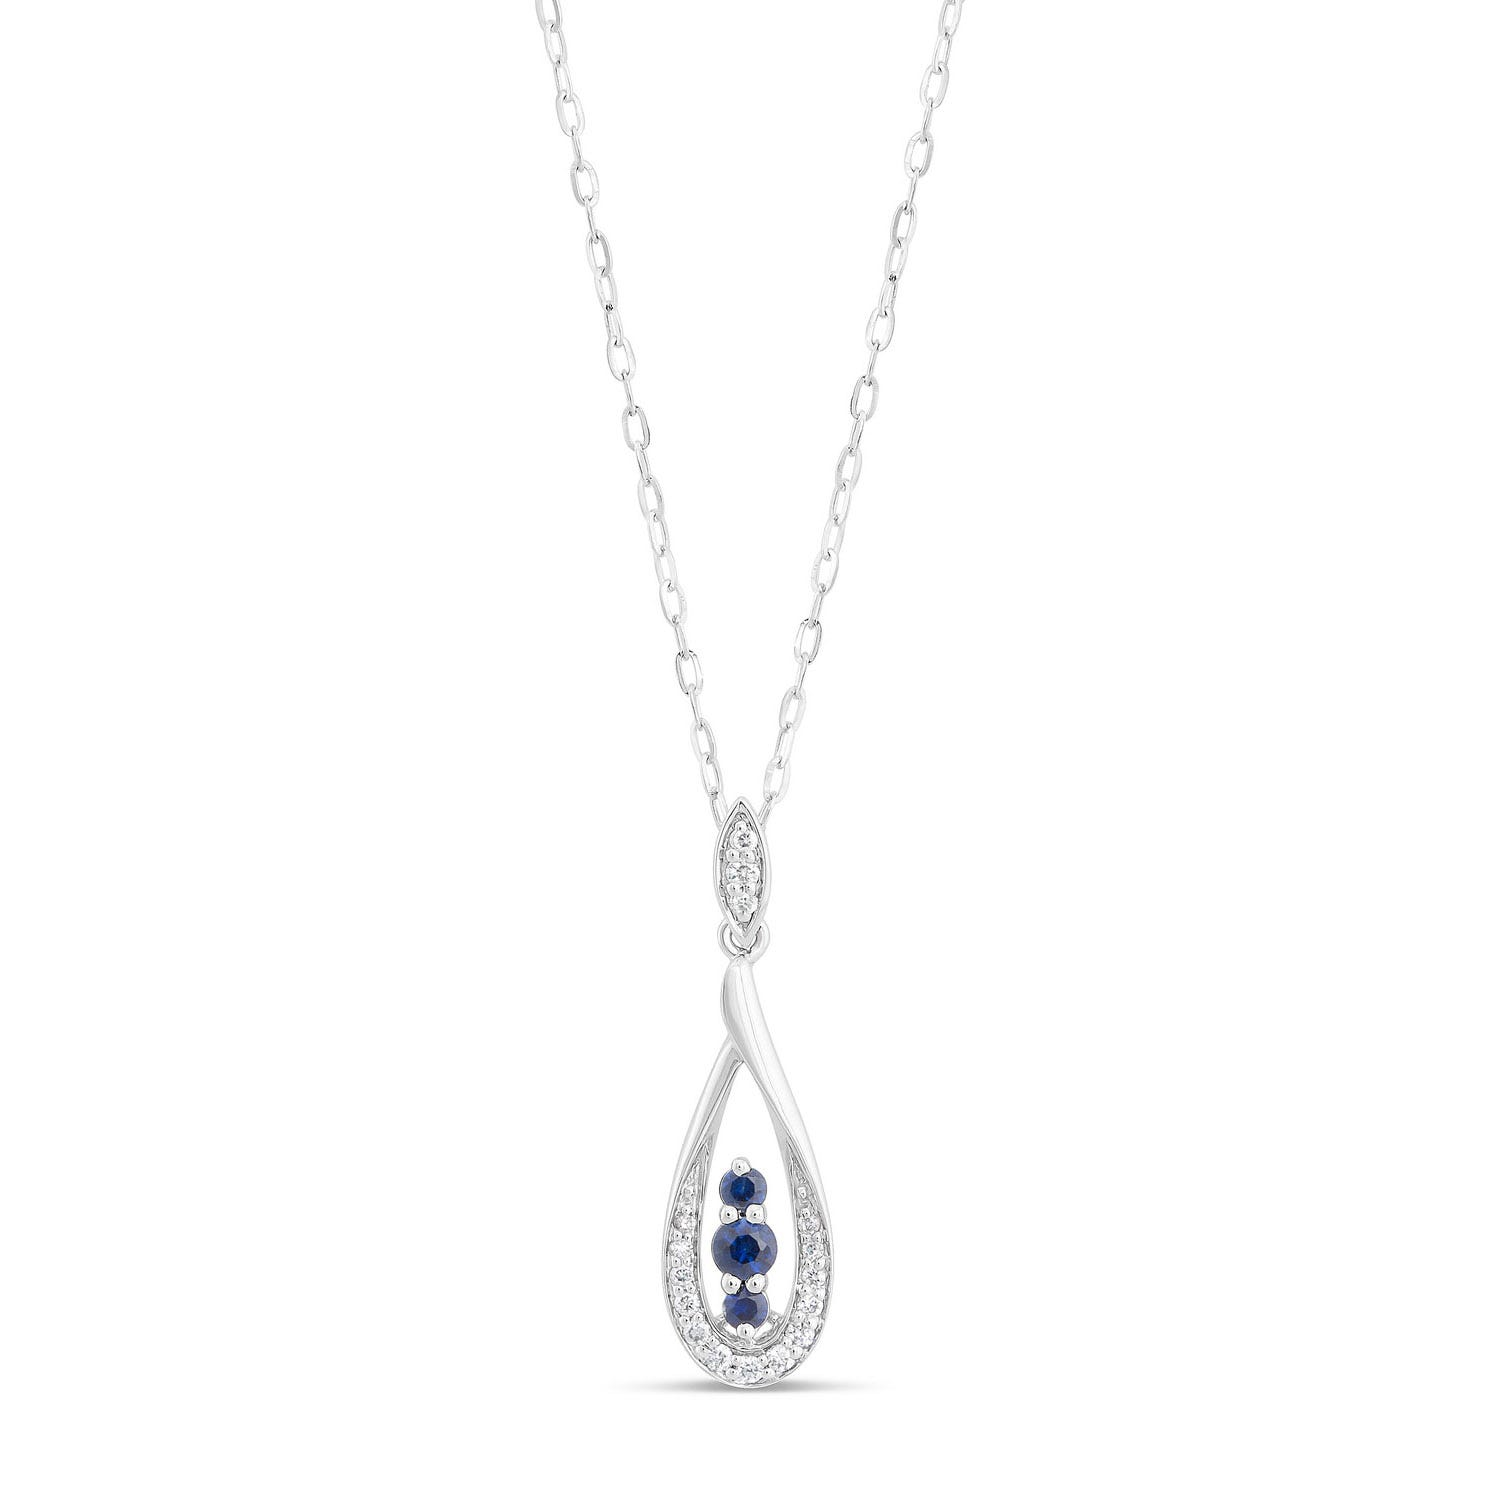 Ladies 9ct White Gold with Sapphire and .10ct Diamond Tear Drop Necklace